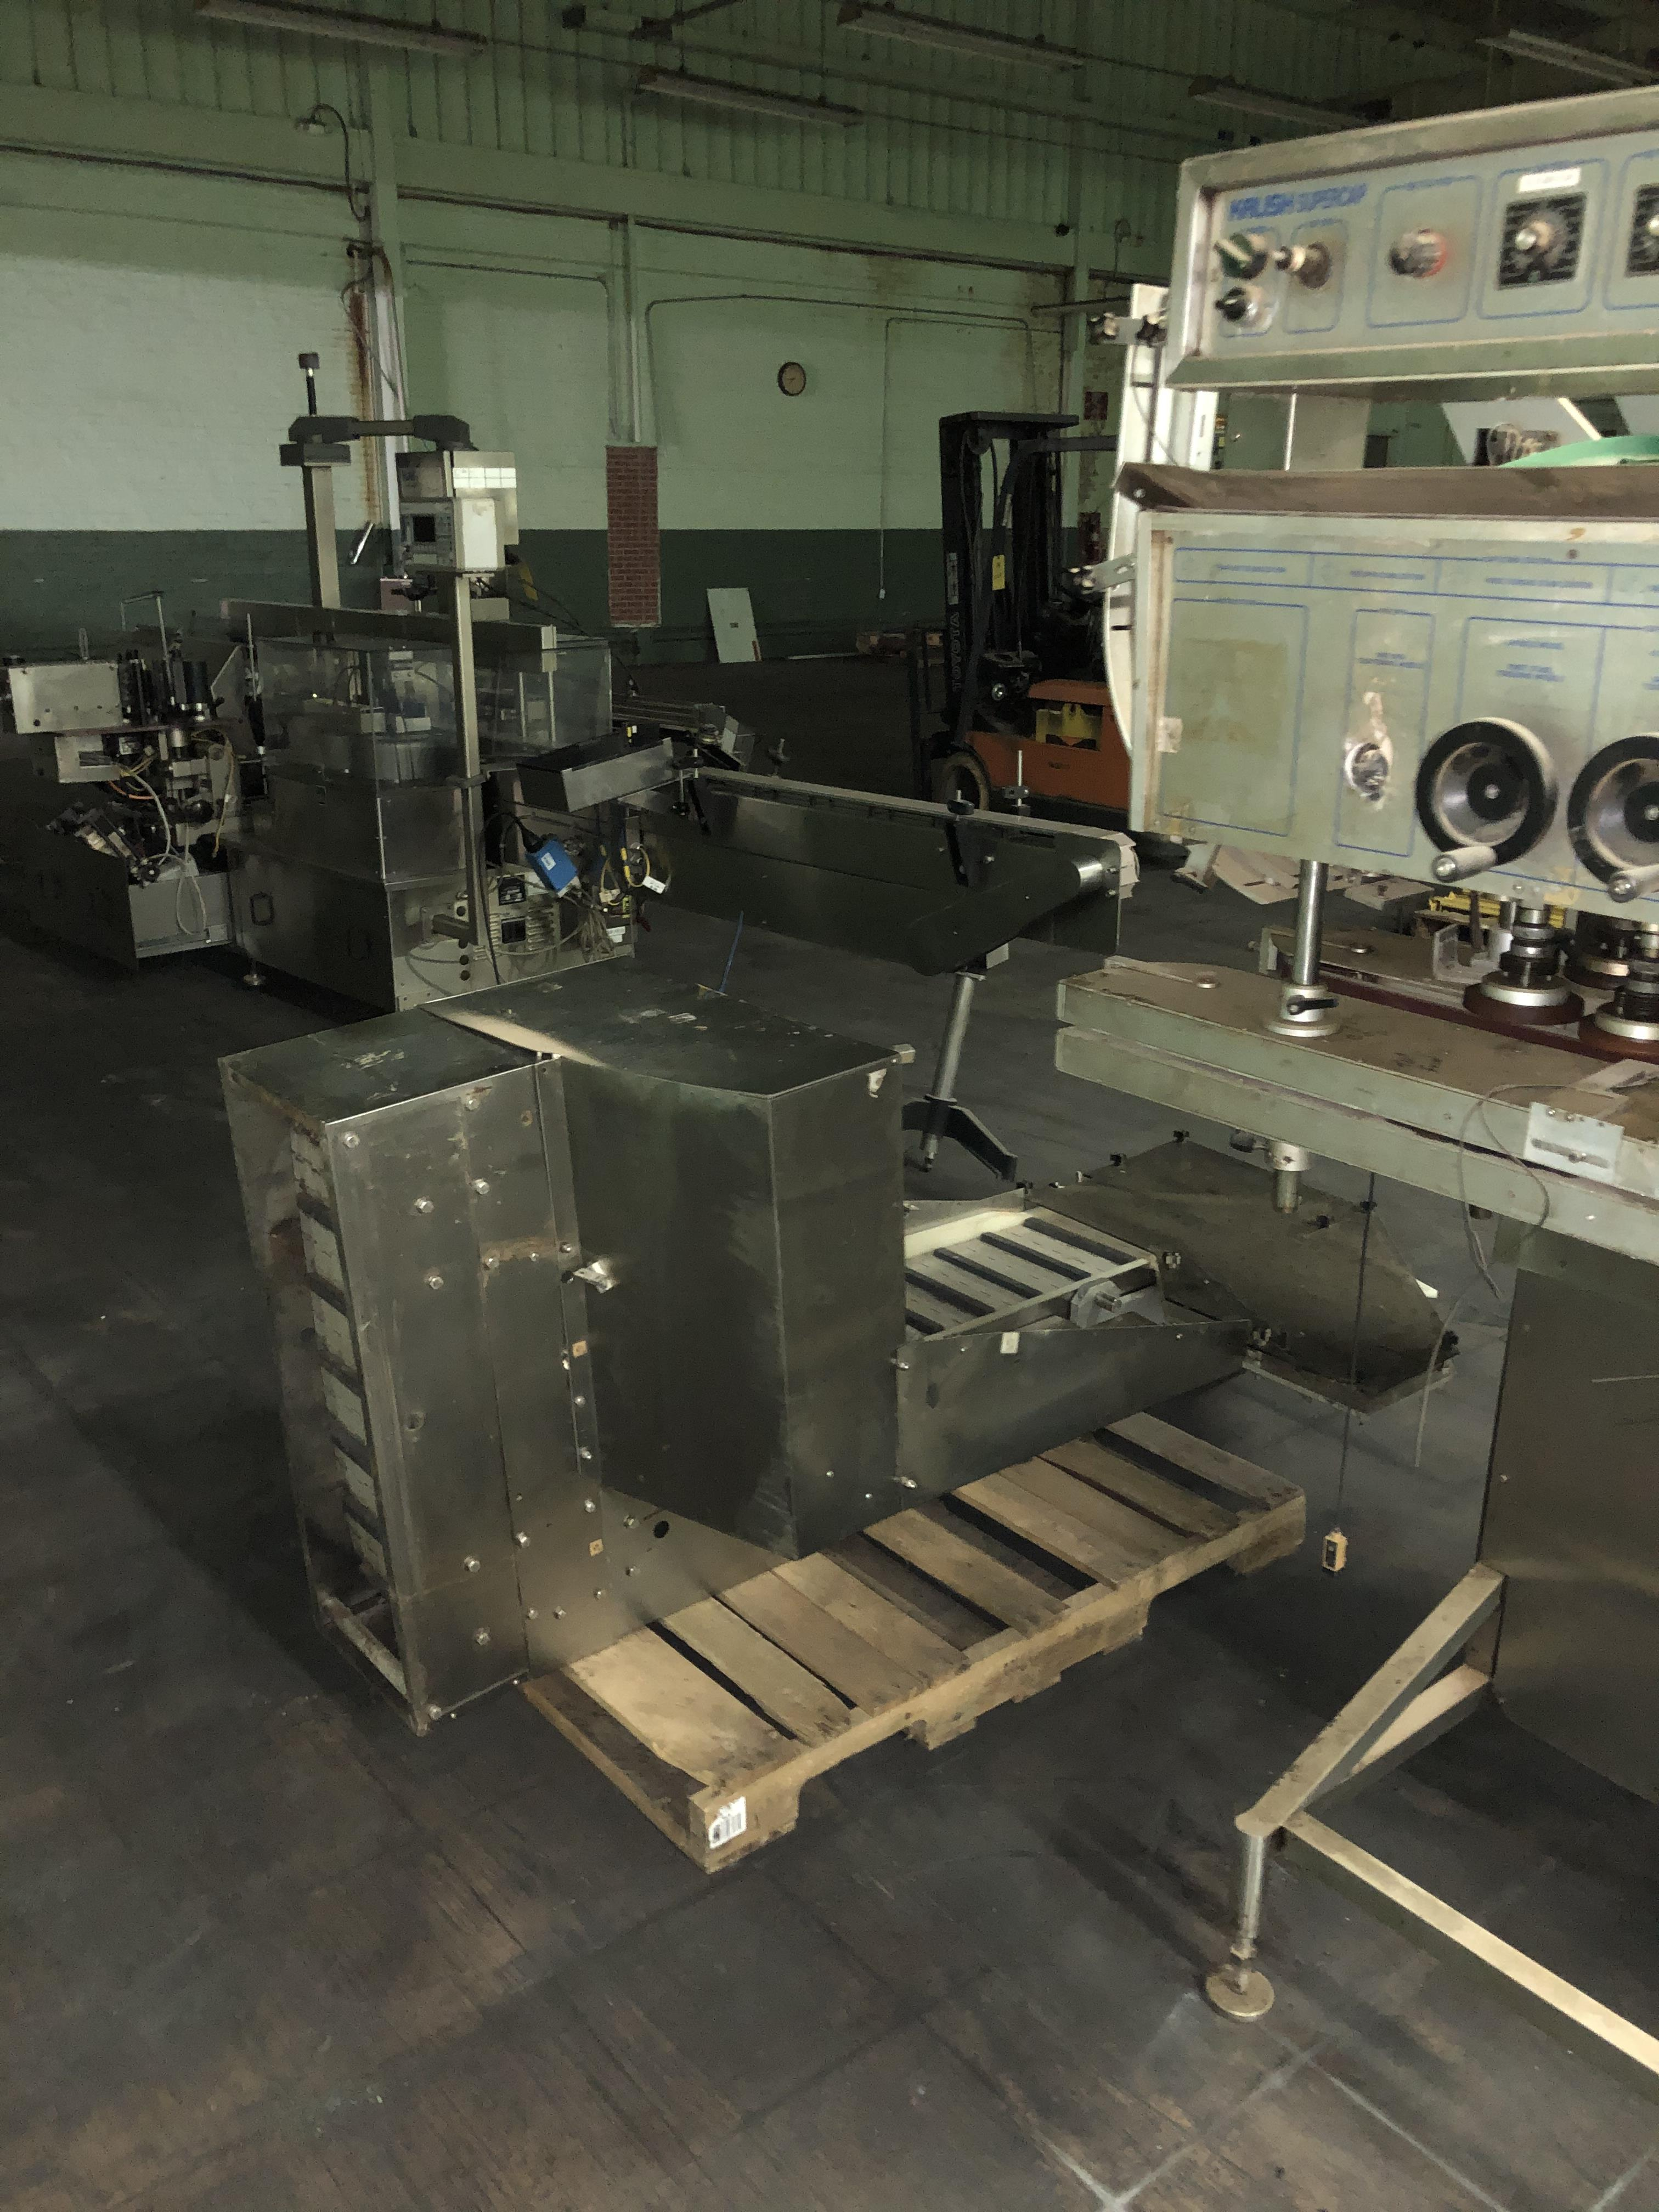 Kalish Model #5010 Supercap Capper, SN 0310, Includes Conveyor Feed, RIGGING FEE $450 - Image 6 of 6